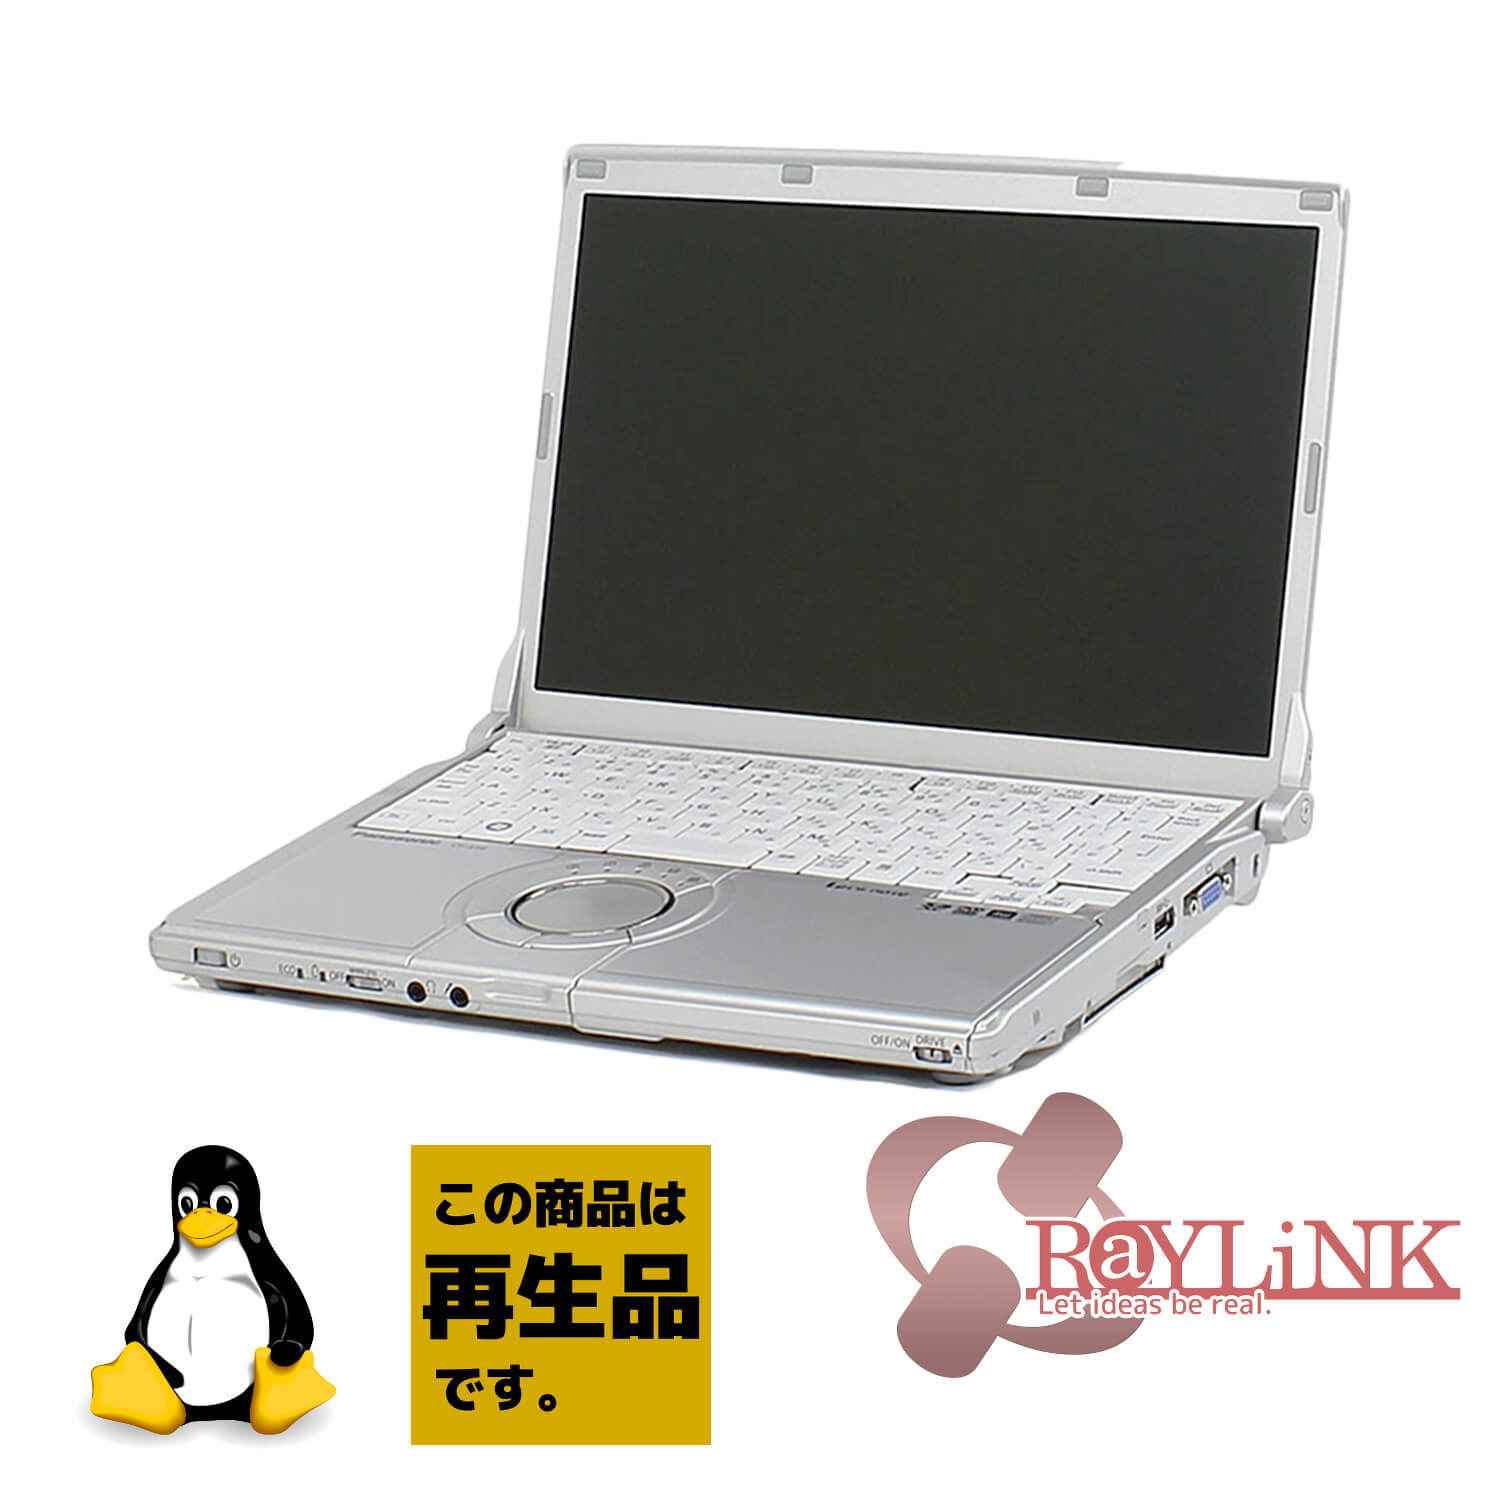 【再生品】Panasonic / Let's note S / Linux / Ubuntu / HDD250GB / 4GB / Core i5